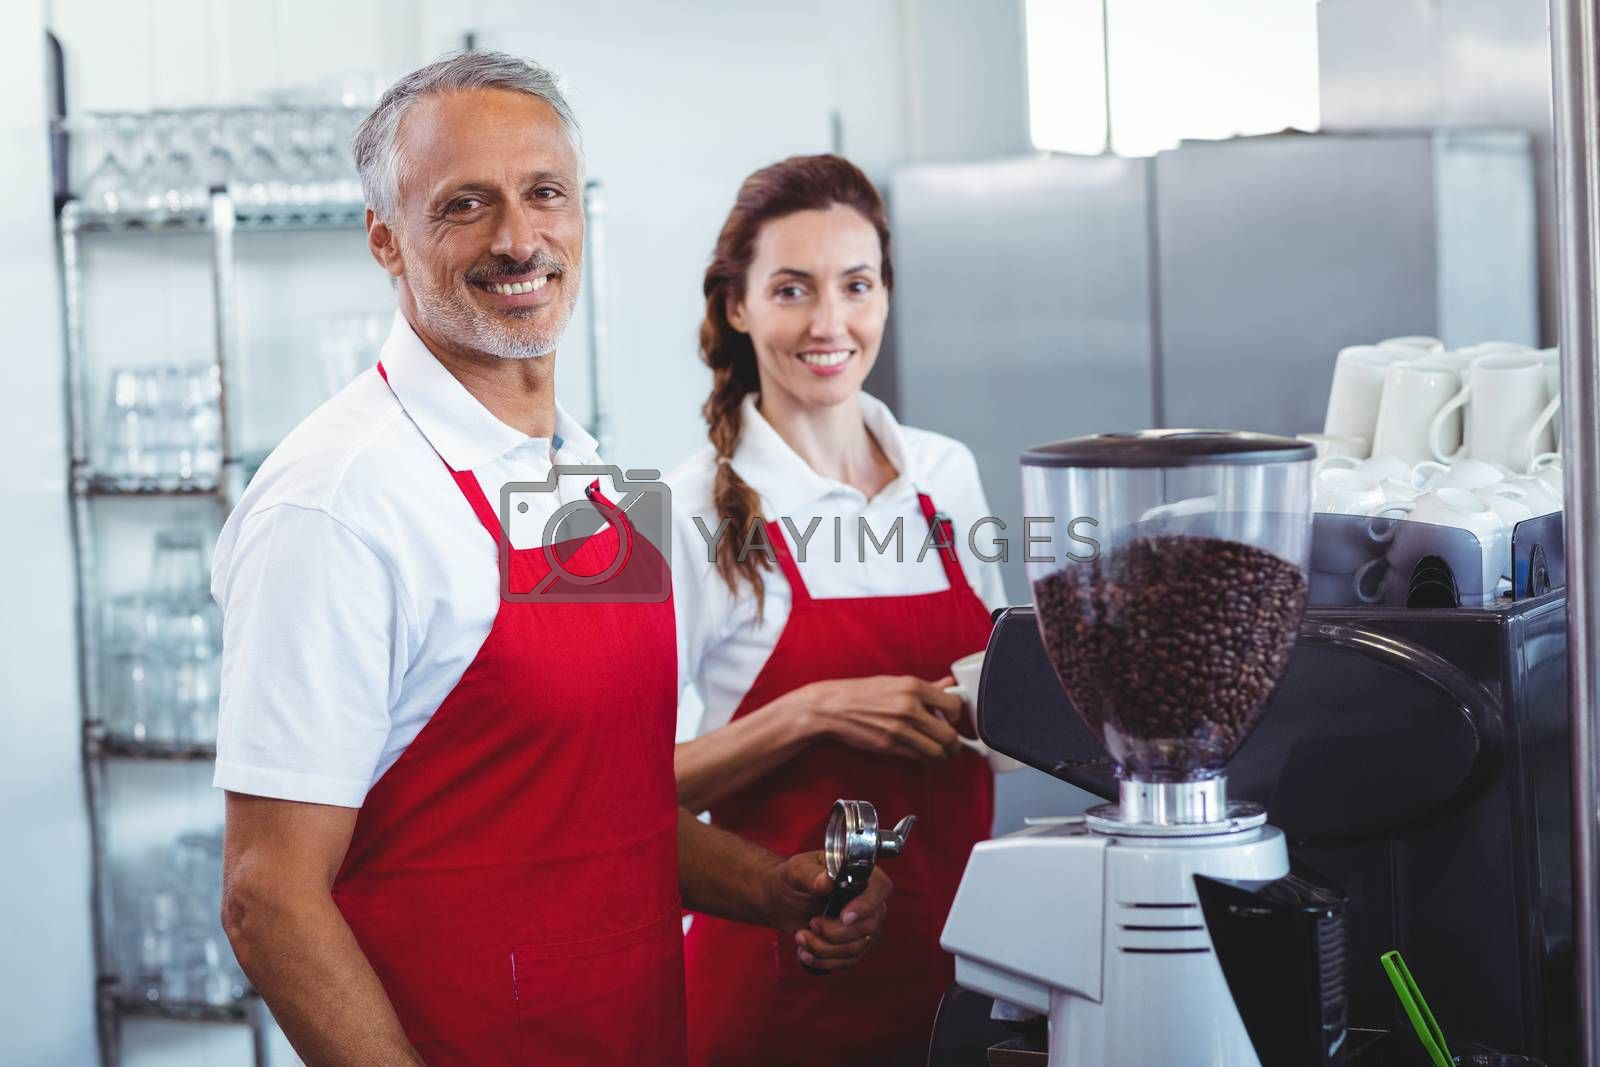 Royalty free image of Two baristas smiling at the camera by Wavebreakmedia